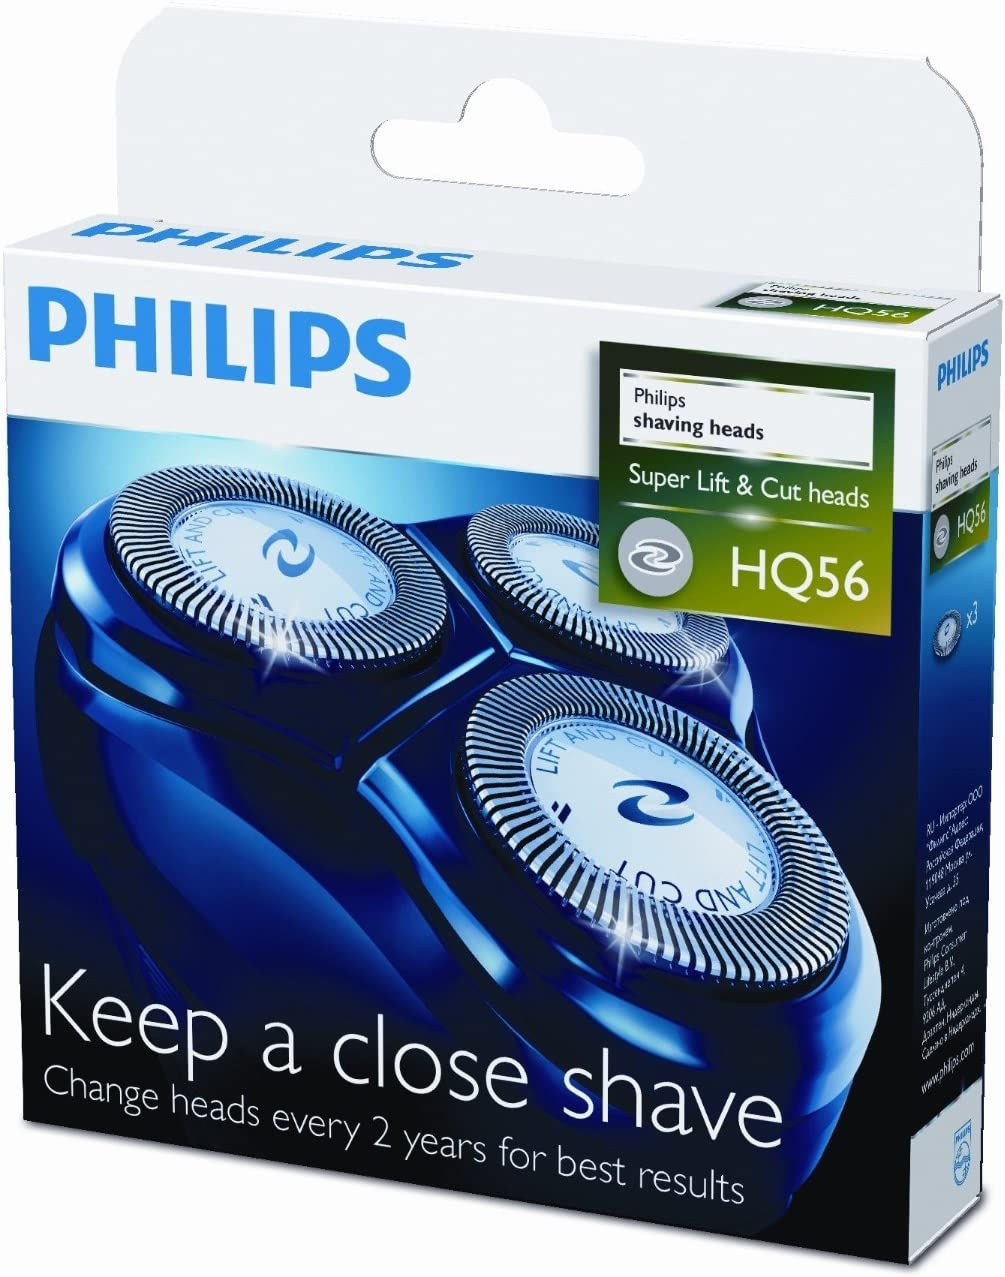 Philips shaving heads HQ56 Lift & Cut 3 heads: Amazon.es: Electrónica